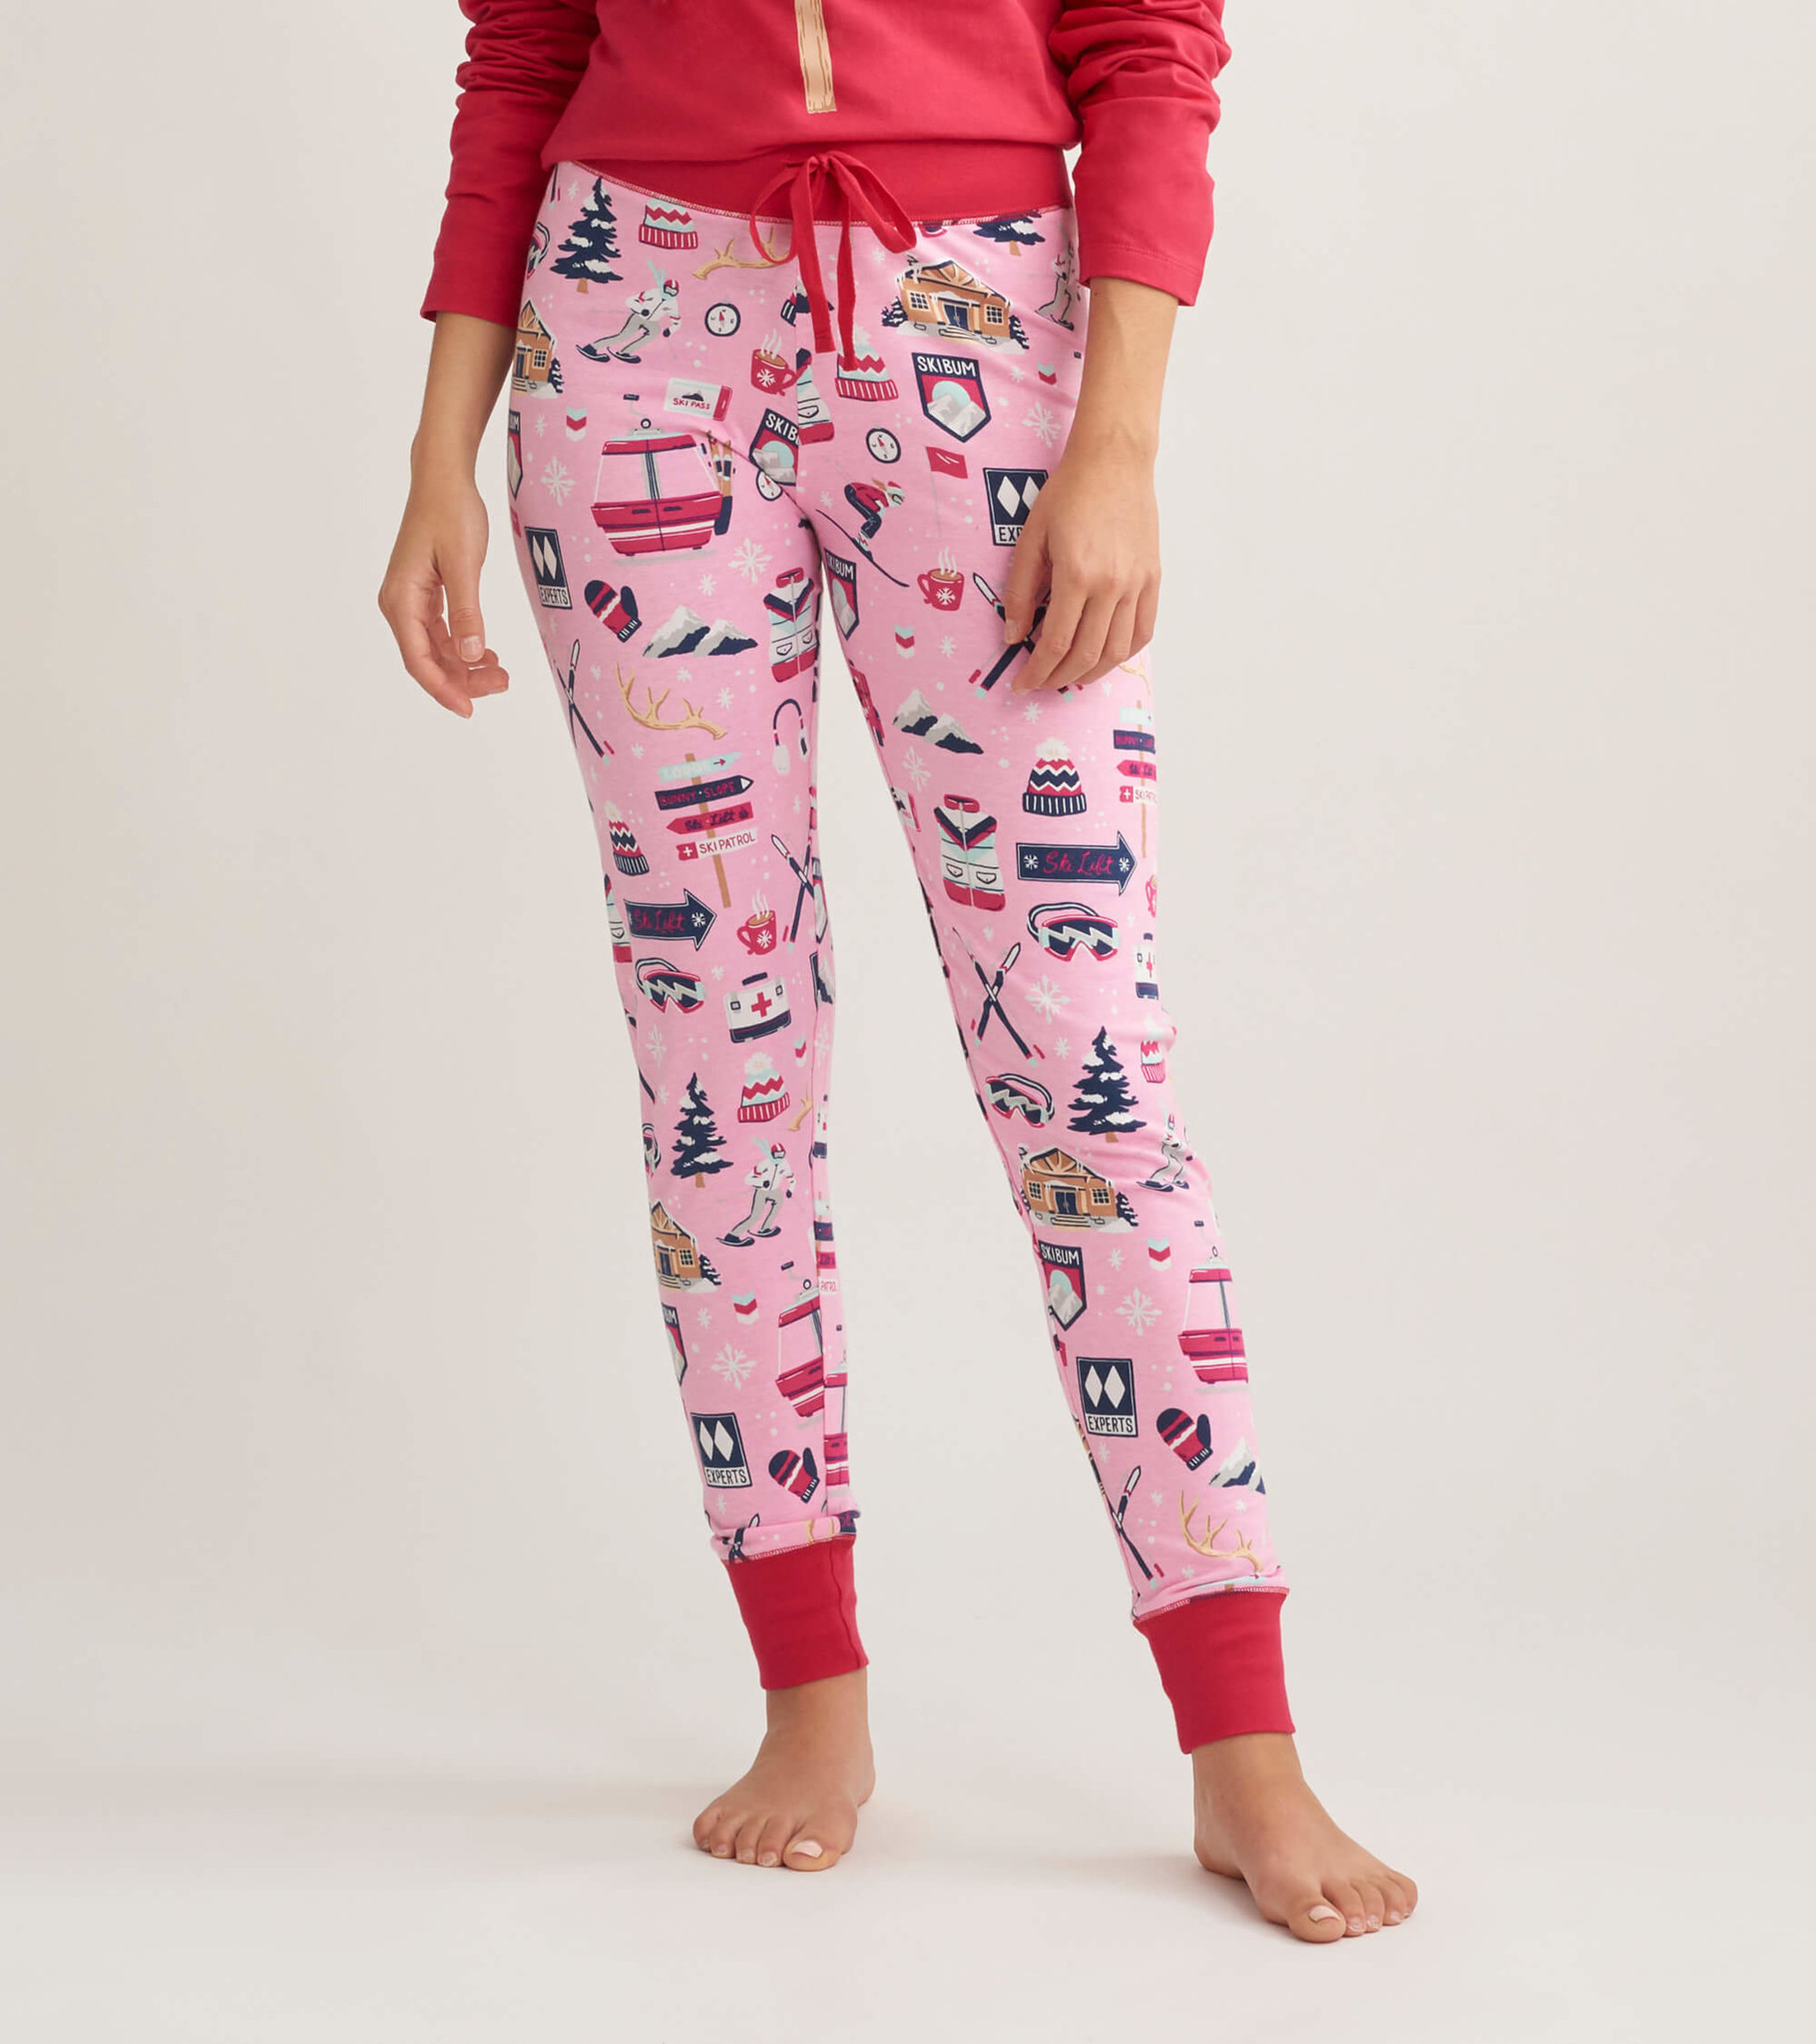 Ski Holiday Women's Sleep Leggings